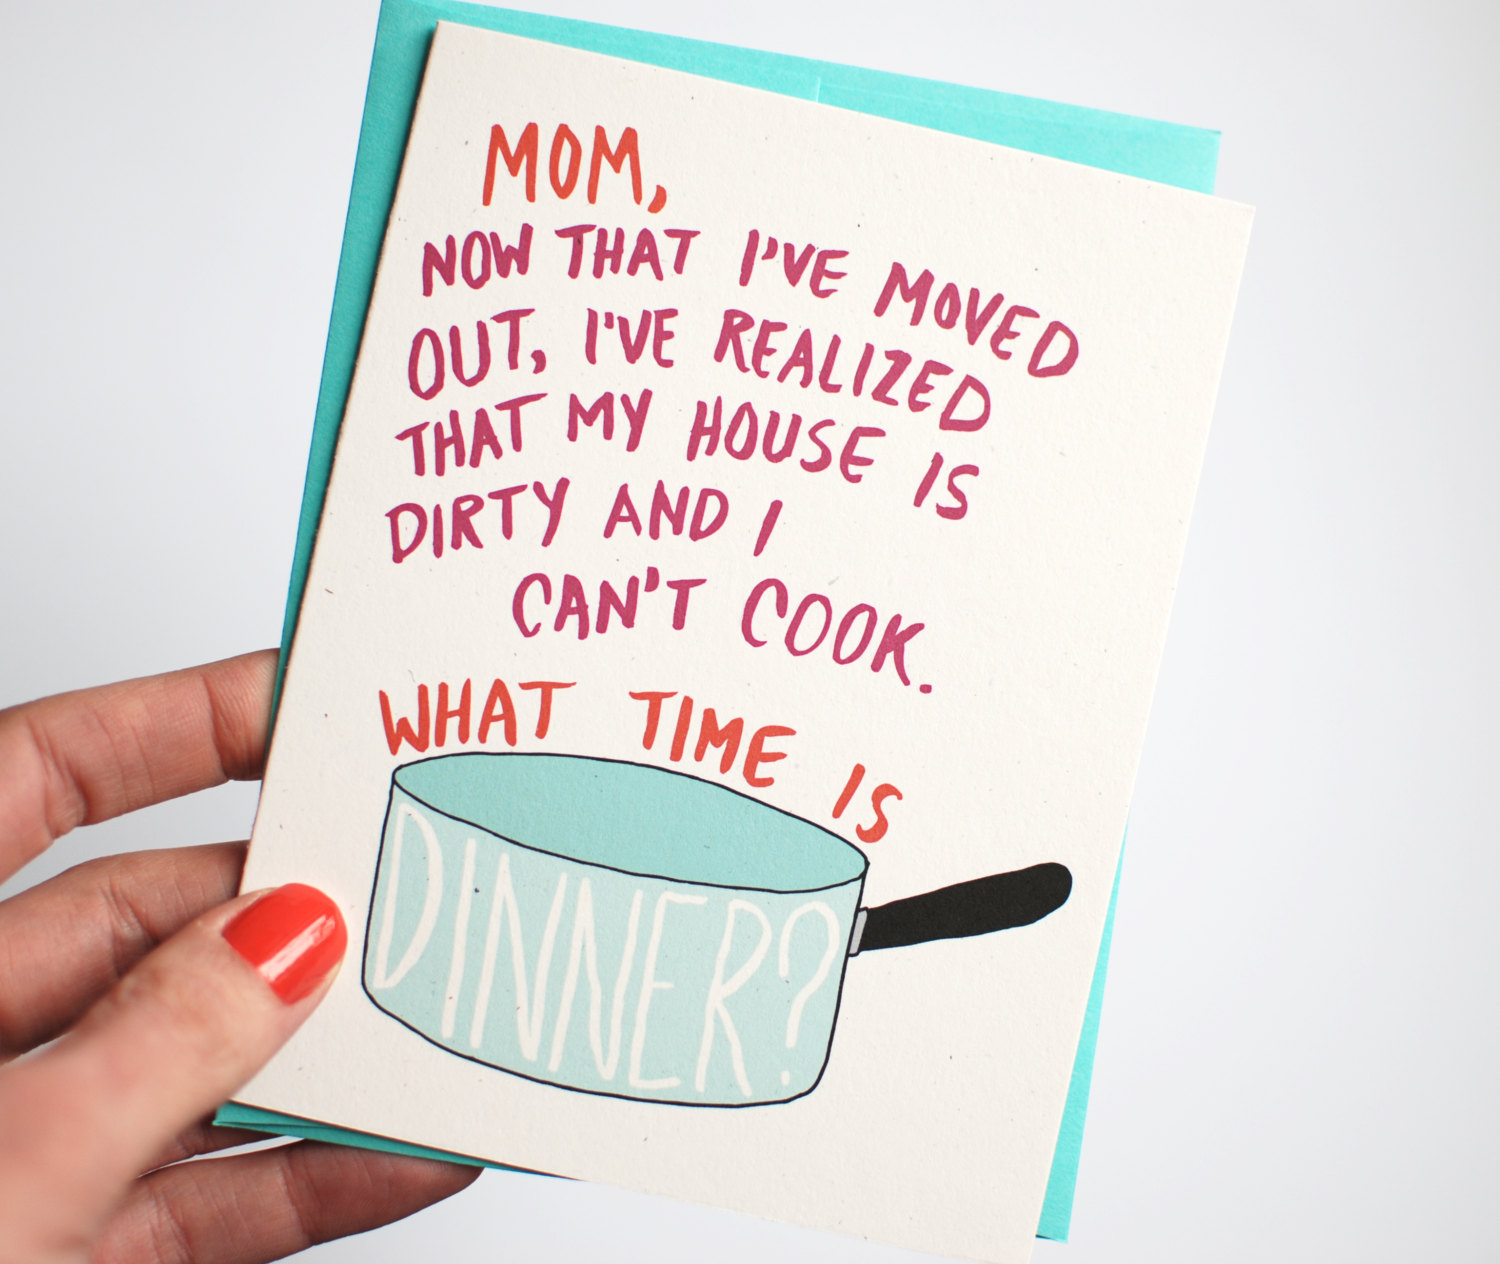 20 Funny Mothers Day Cards For The Mom With An Amazing Sense Of Humor